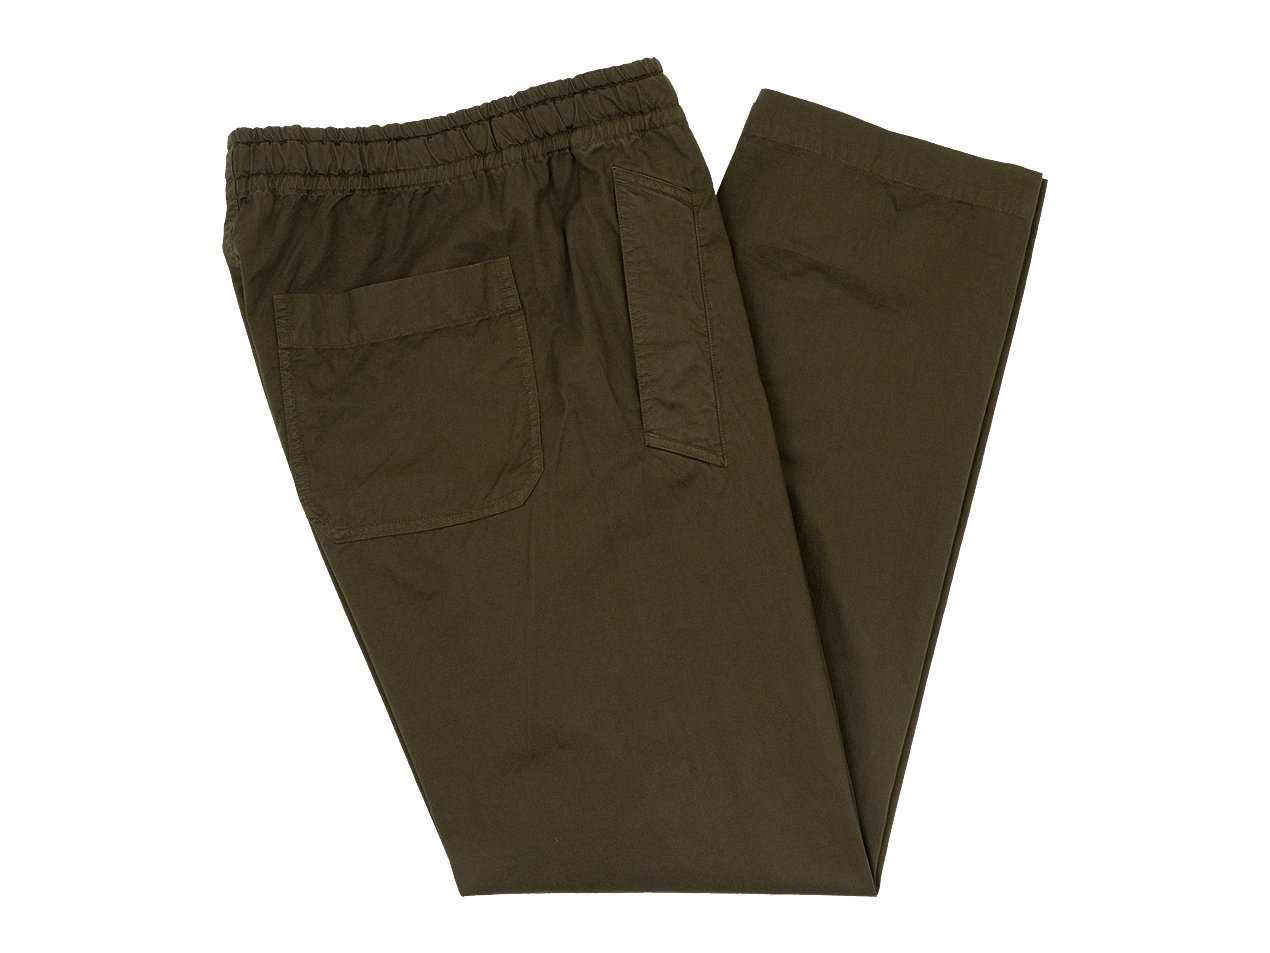 MHL. SUPERFINE COTTON TWILL TROUSERS 052BROWN〔メンズ〕